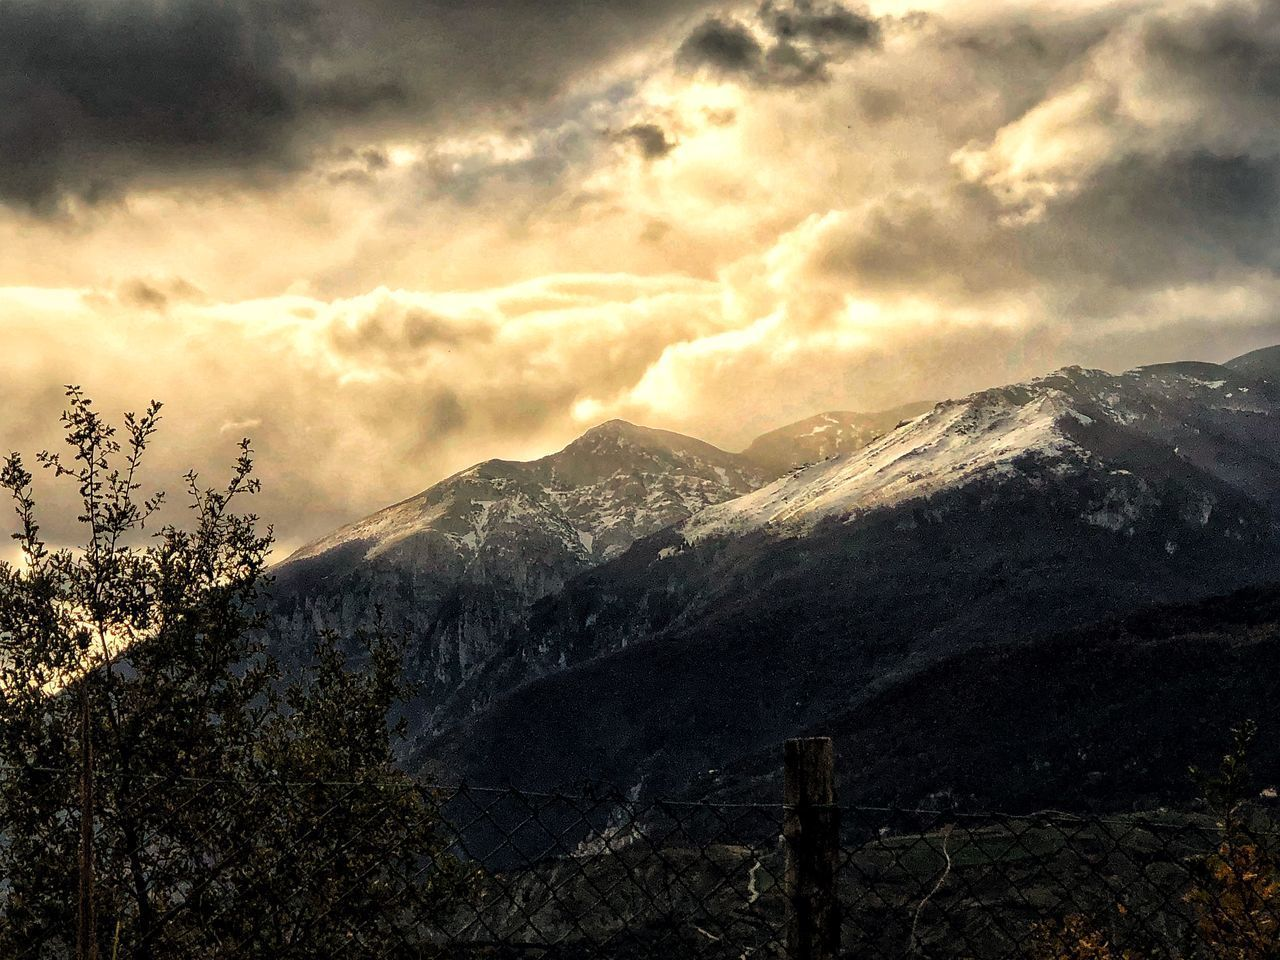 mountain, sky, cloud - sky, beauty in nature, scenics - nature, environment, nature, mountain range, landscape, cold temperature, snow, tranquil scene, winter, no people, tranquility, outdoors, idyllic, non-urban scene, sunset, mountain peak, snowcapped mountain, range